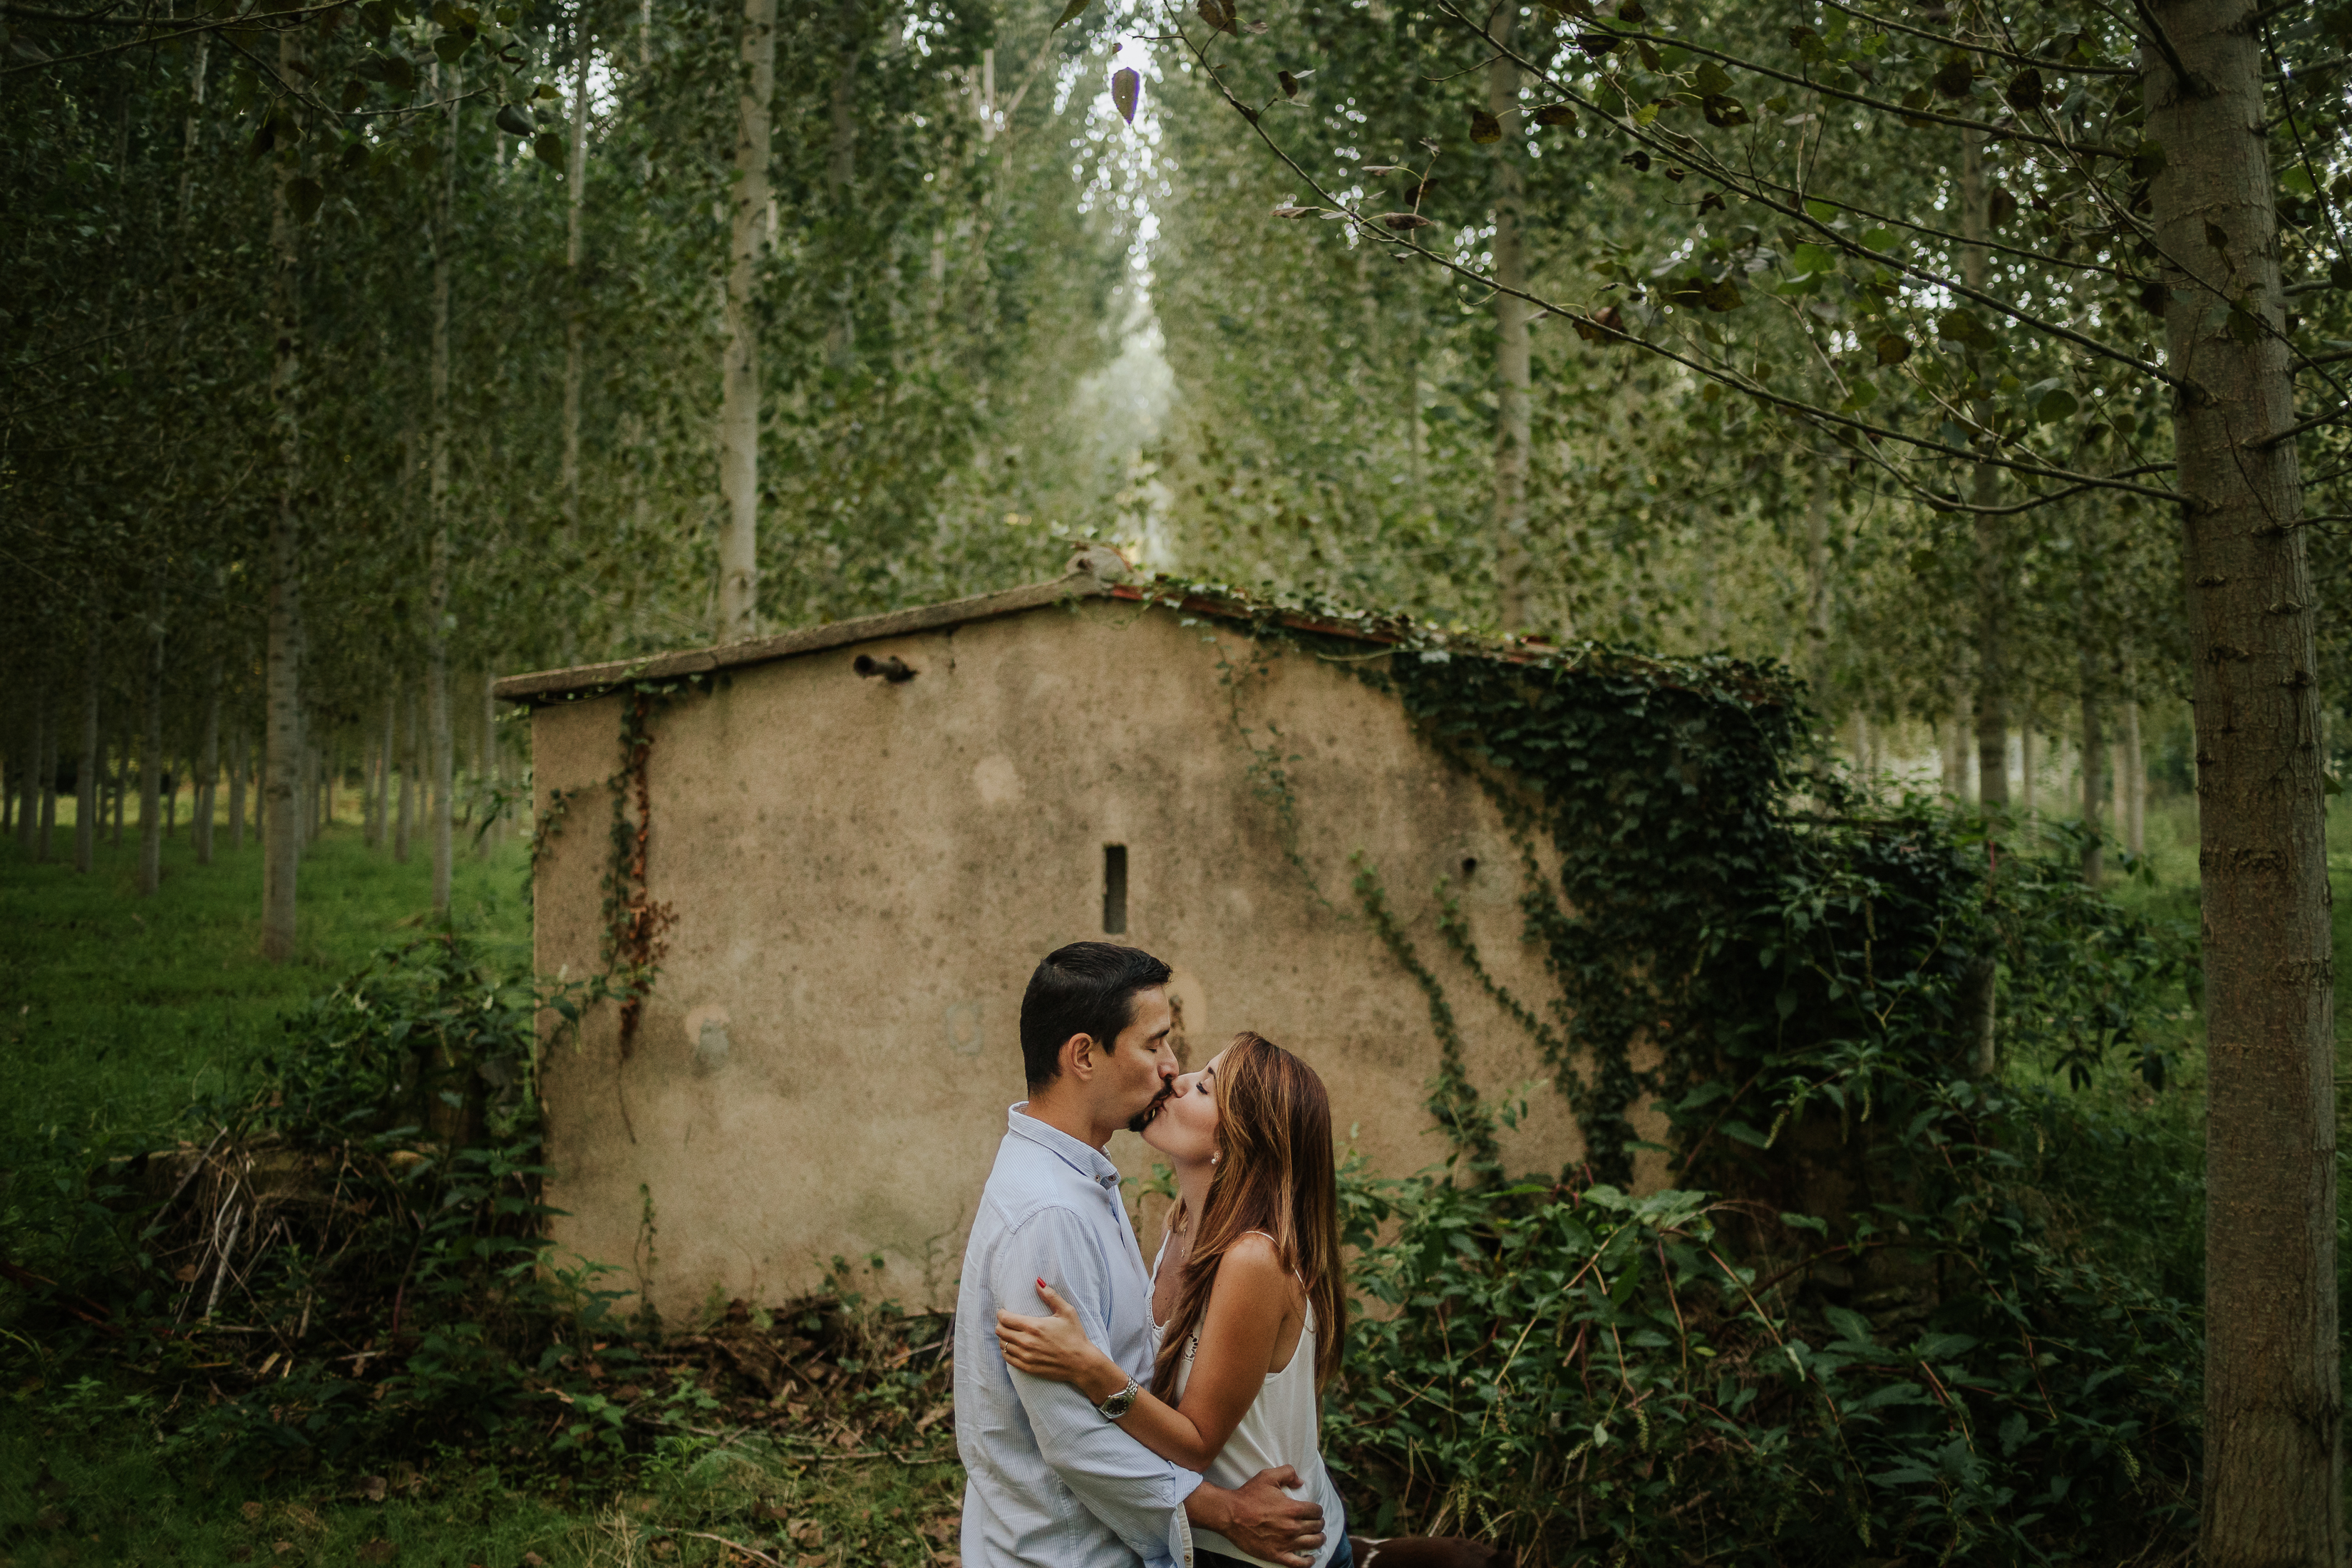 fotógrafo de pareja :: Fotógrafo de preboda :: Preboda en el bosque :: Preboda en el campo :: fotógrafo de bodas :: Wedding photographer :: Barcelona wedding photographer :: Reportaje de pareja